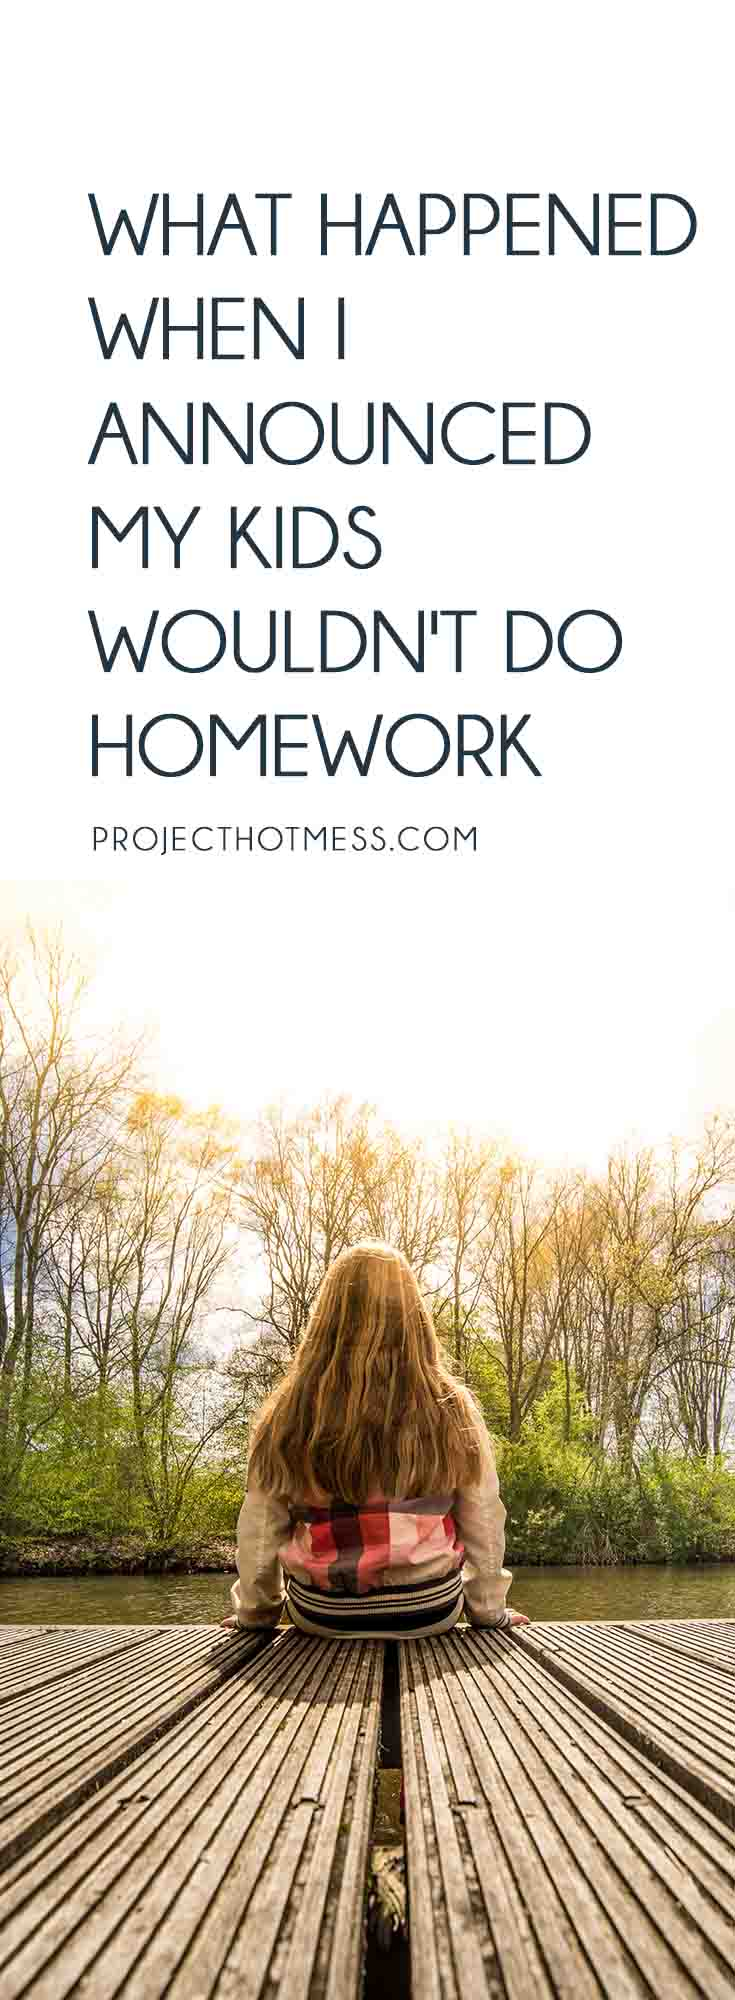 Should kids really be doing homework every day? Is that what's best for them? This is what happened when one mother announced her kids wouldn't do homework. Homework | Homeschooling | Parenting | Parenting Advice | Mom Life | Parenting Goals | Parenting Ideas | Parenting Tips | Parenting Types | Parenting Hacks | Positive Parenting | Parenthood | Motherhood | Surviving Motherhood | Homework Ideas | Homework Routine